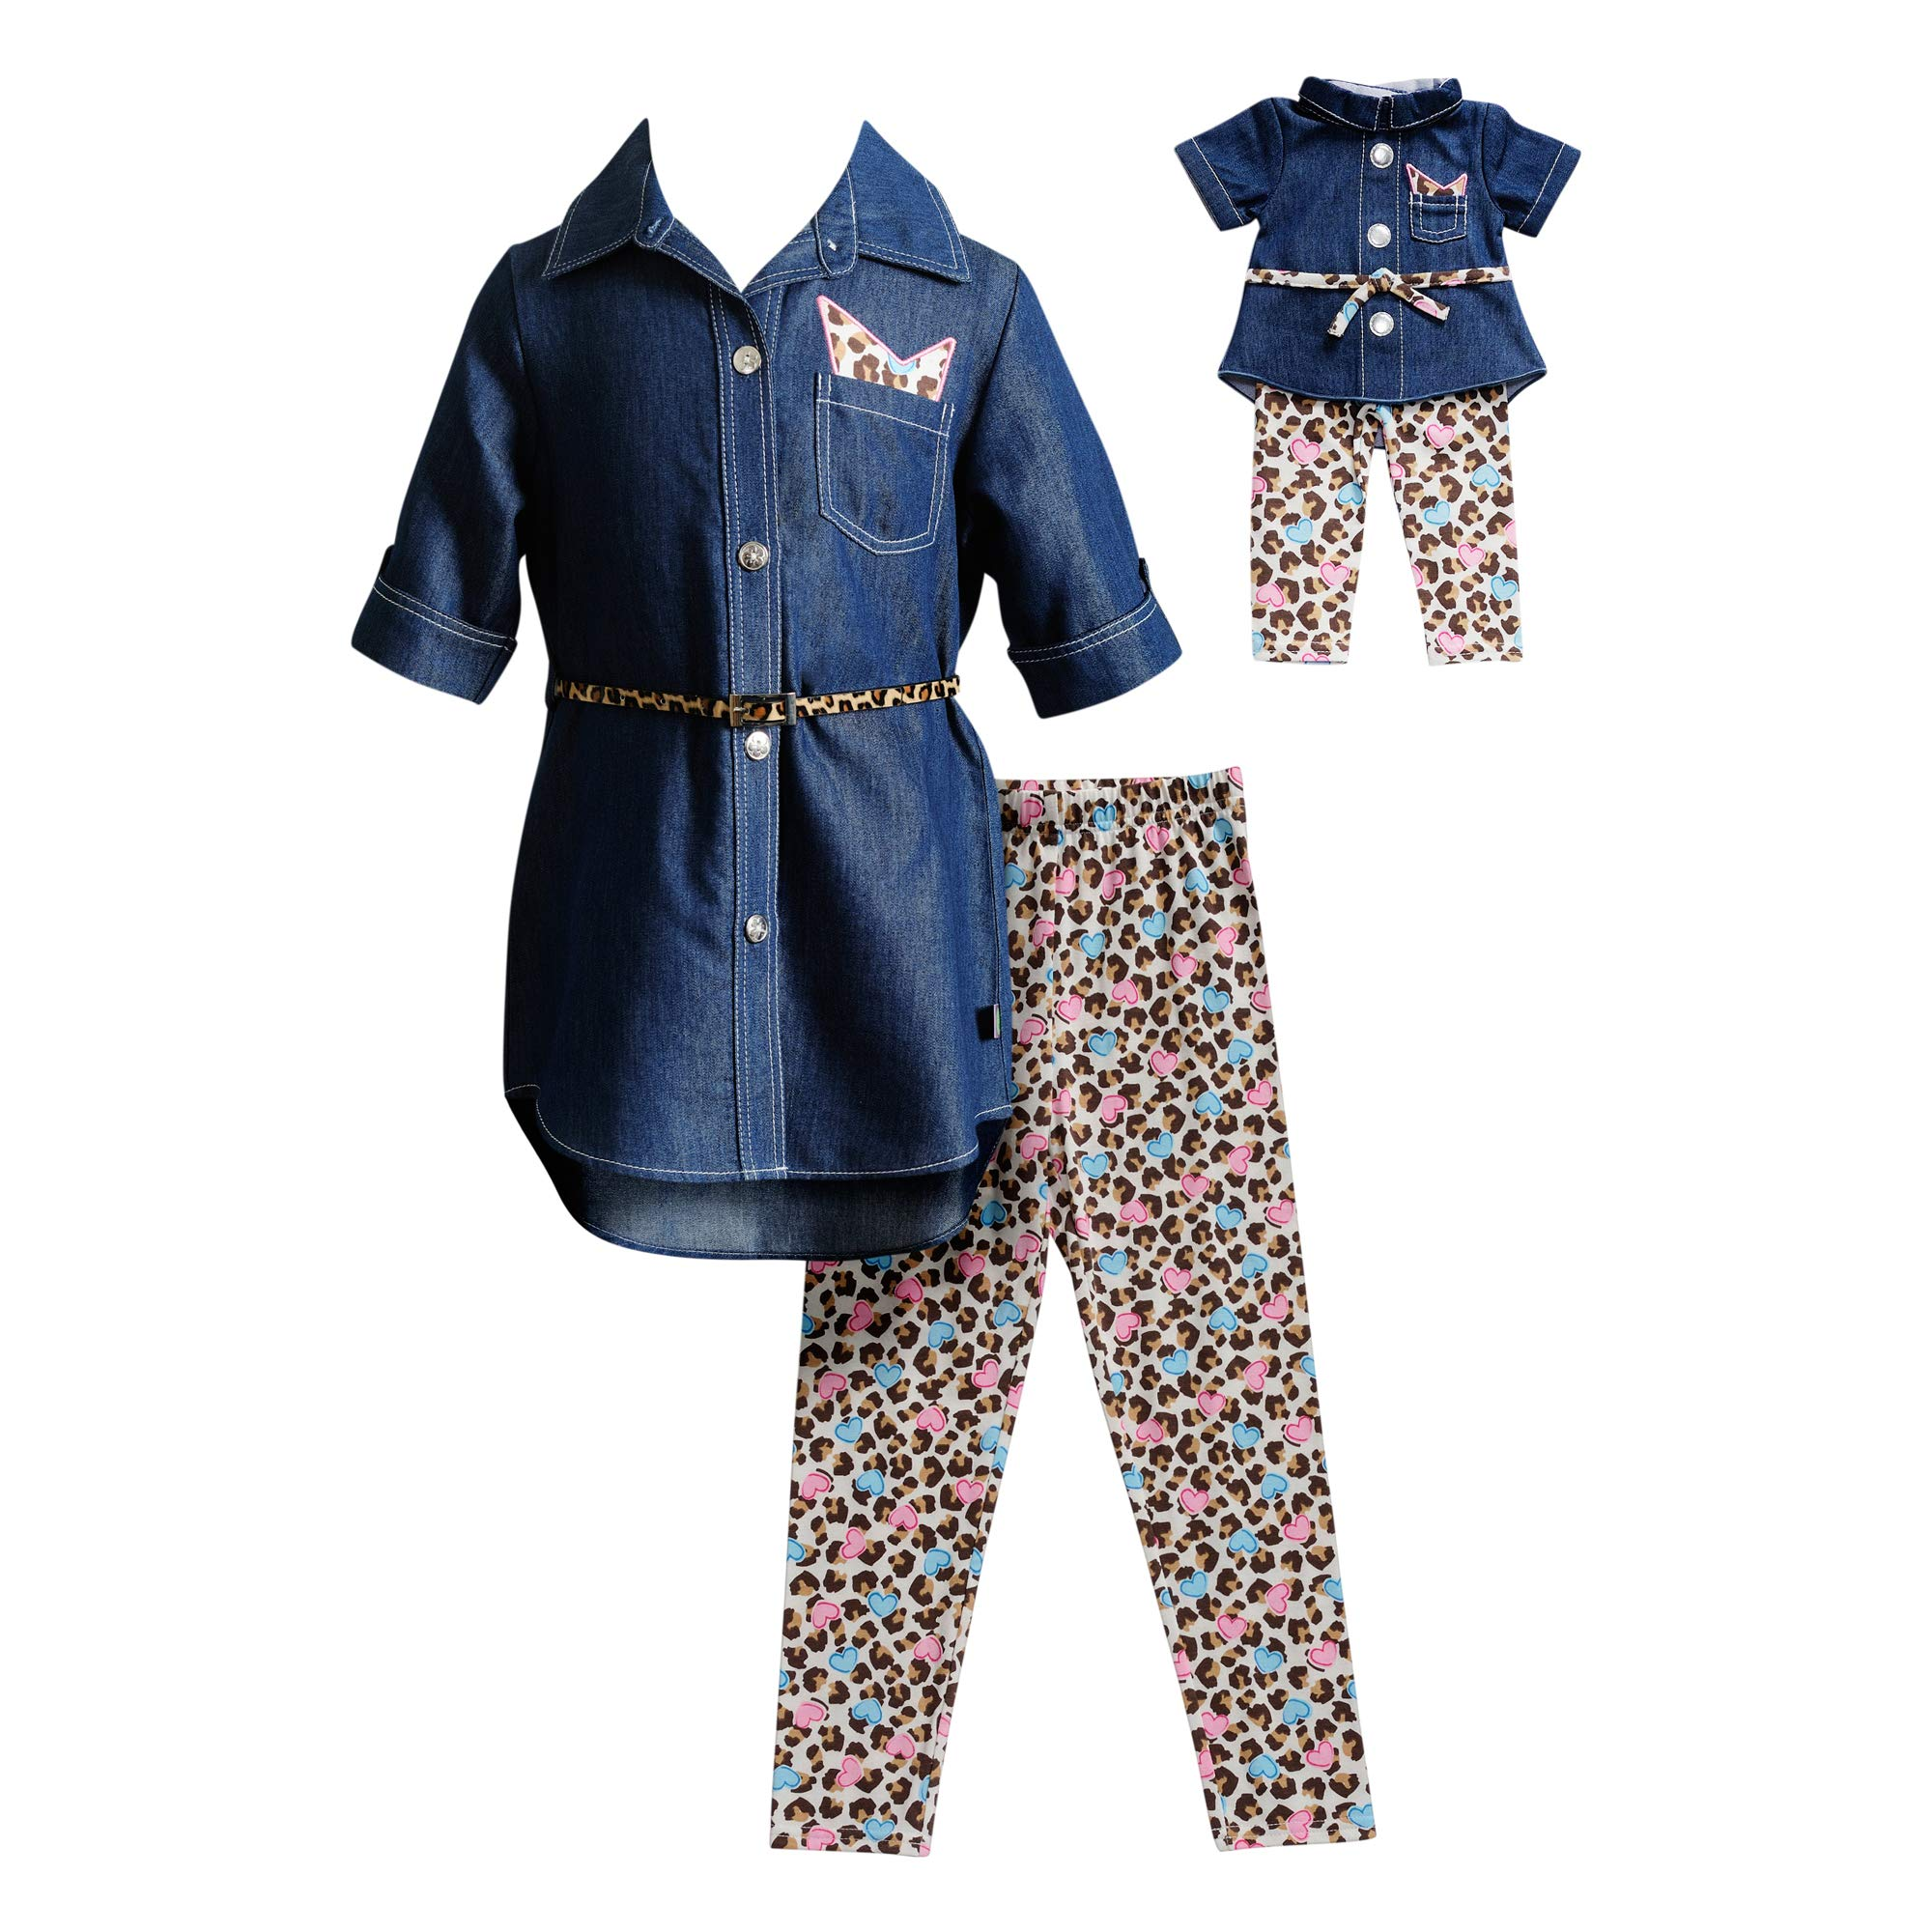 Dollie & Me Girls' Big Denim Top with Legging, Belt and Matching Doll Outfit, Navy/Multi, 7 by Dollie & Me